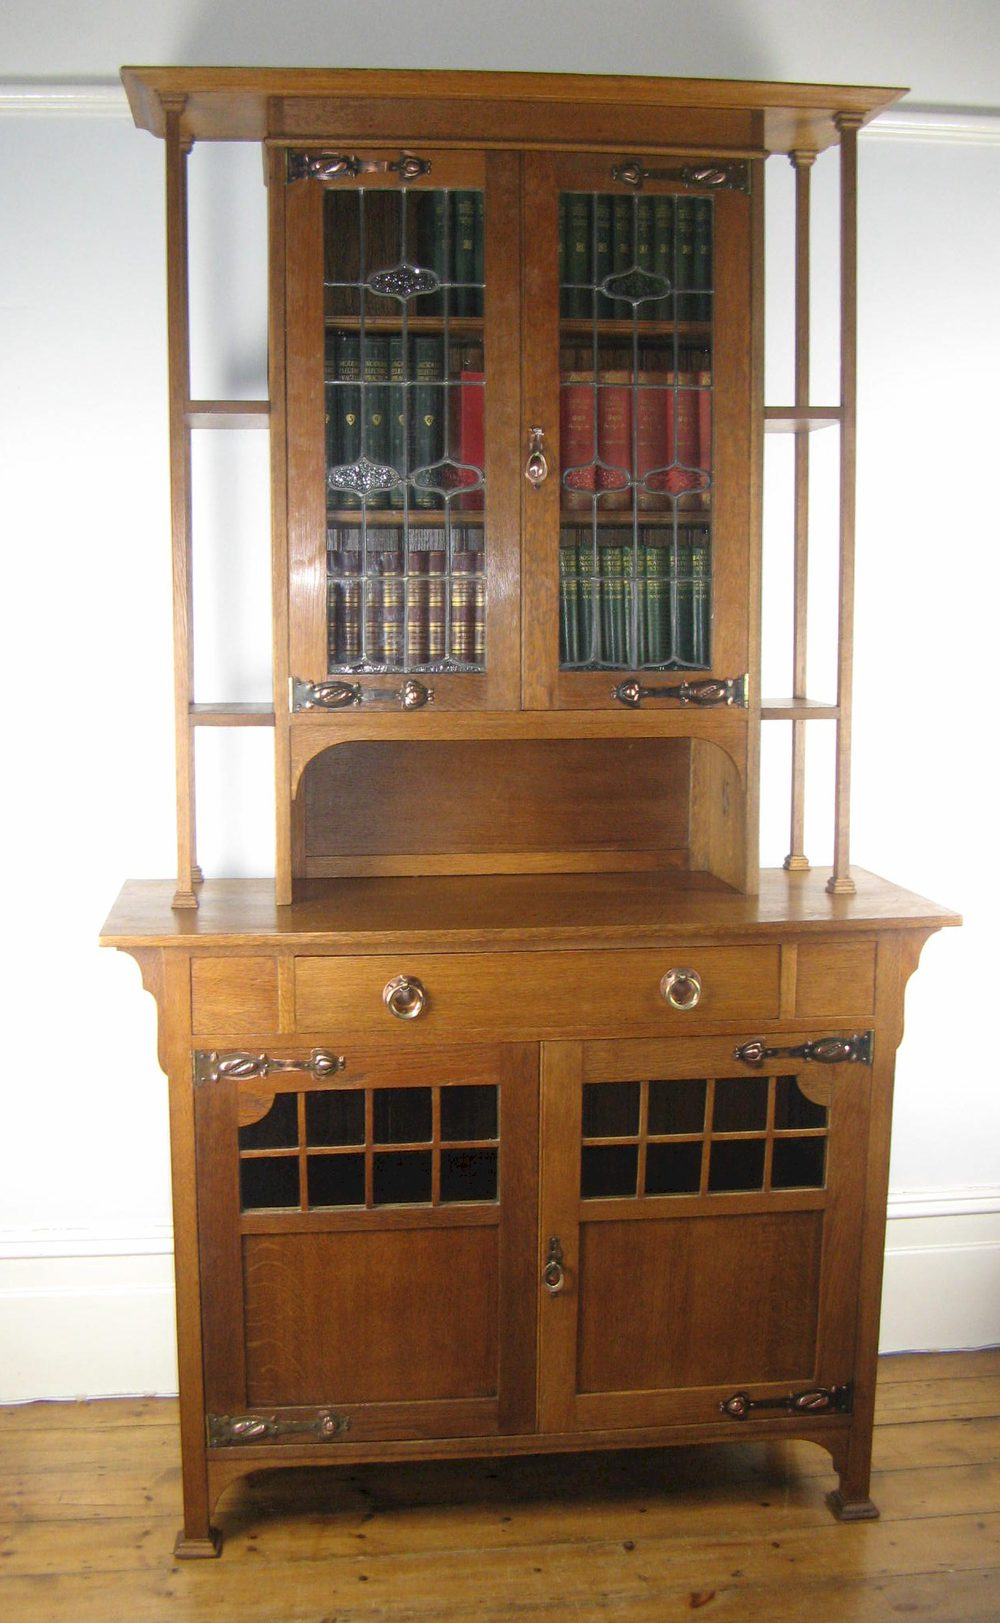 Arts and crafts oak glazed bookcase sideboard antiques for Arts and crafts bookshelf